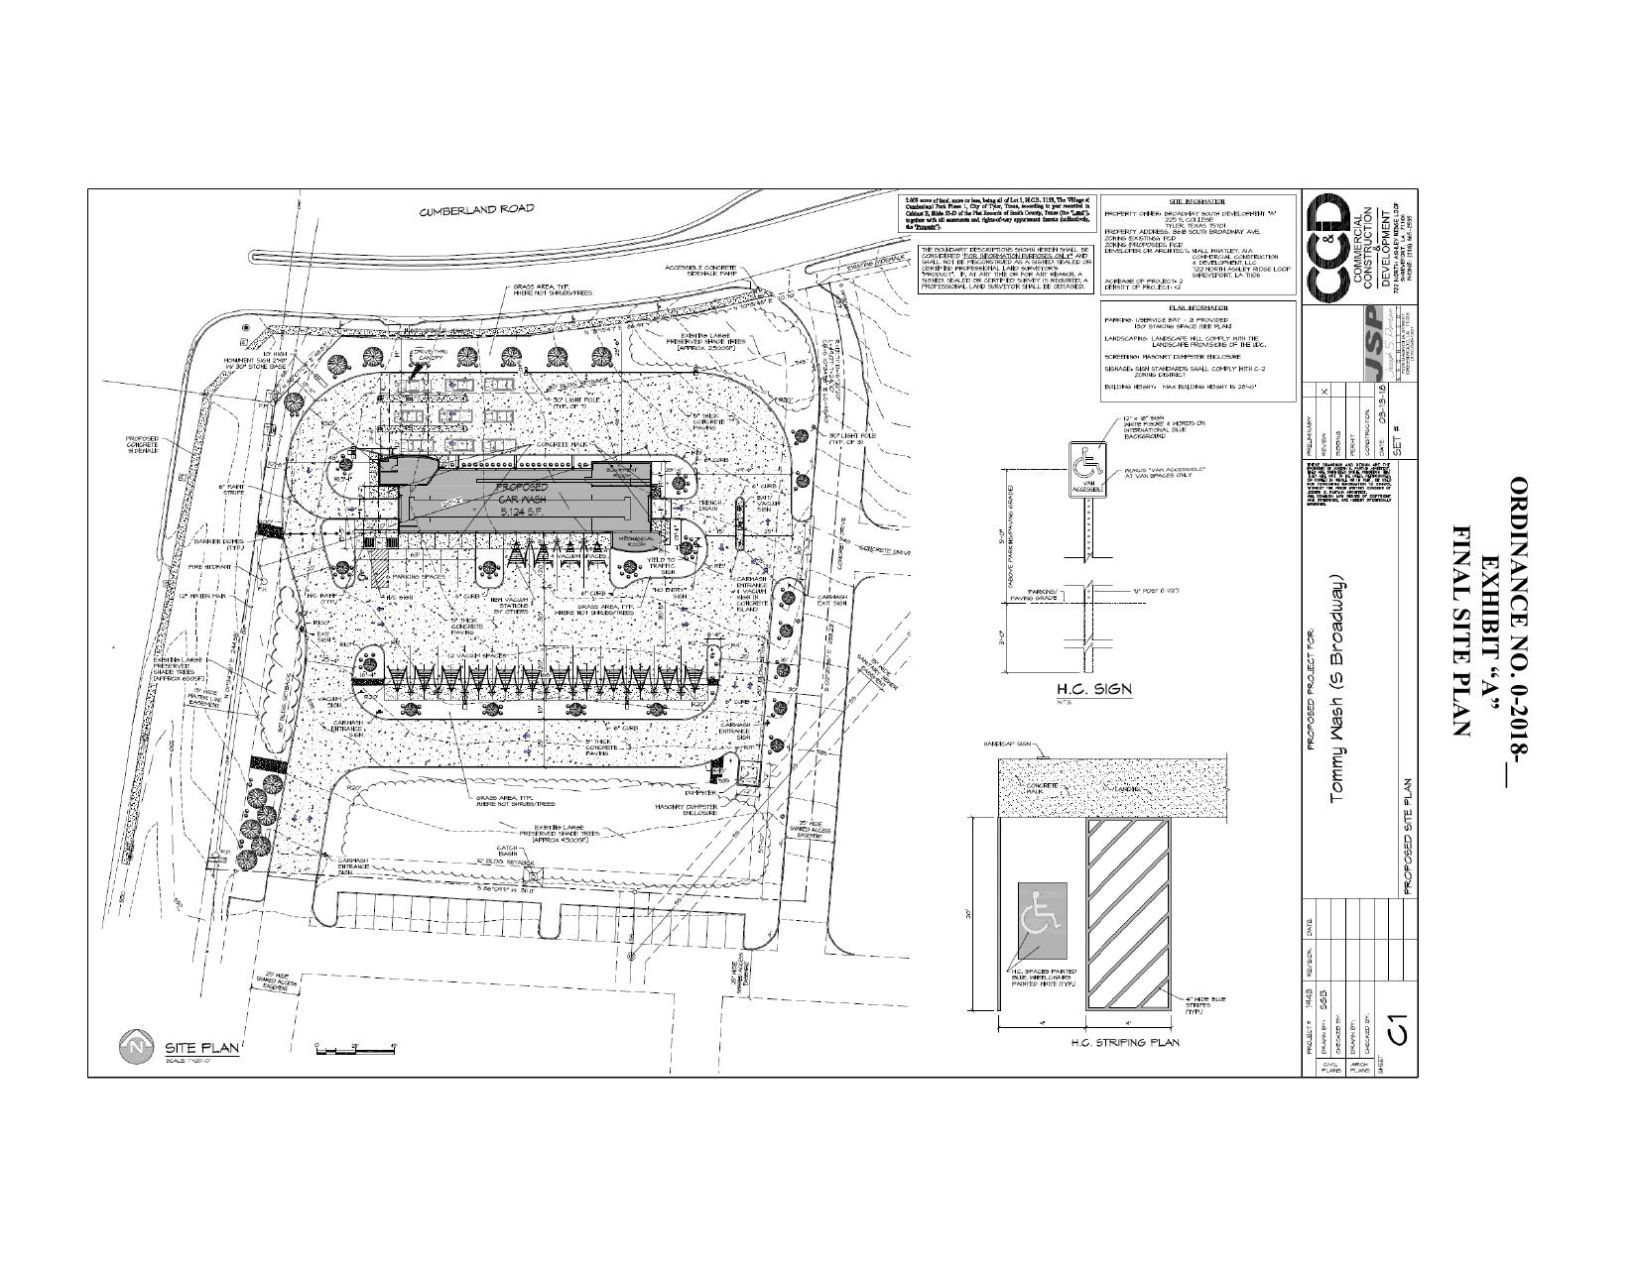 download pdf site plan for car wash at cumberland and south broadway [ 1200 x 926 Pixel ]